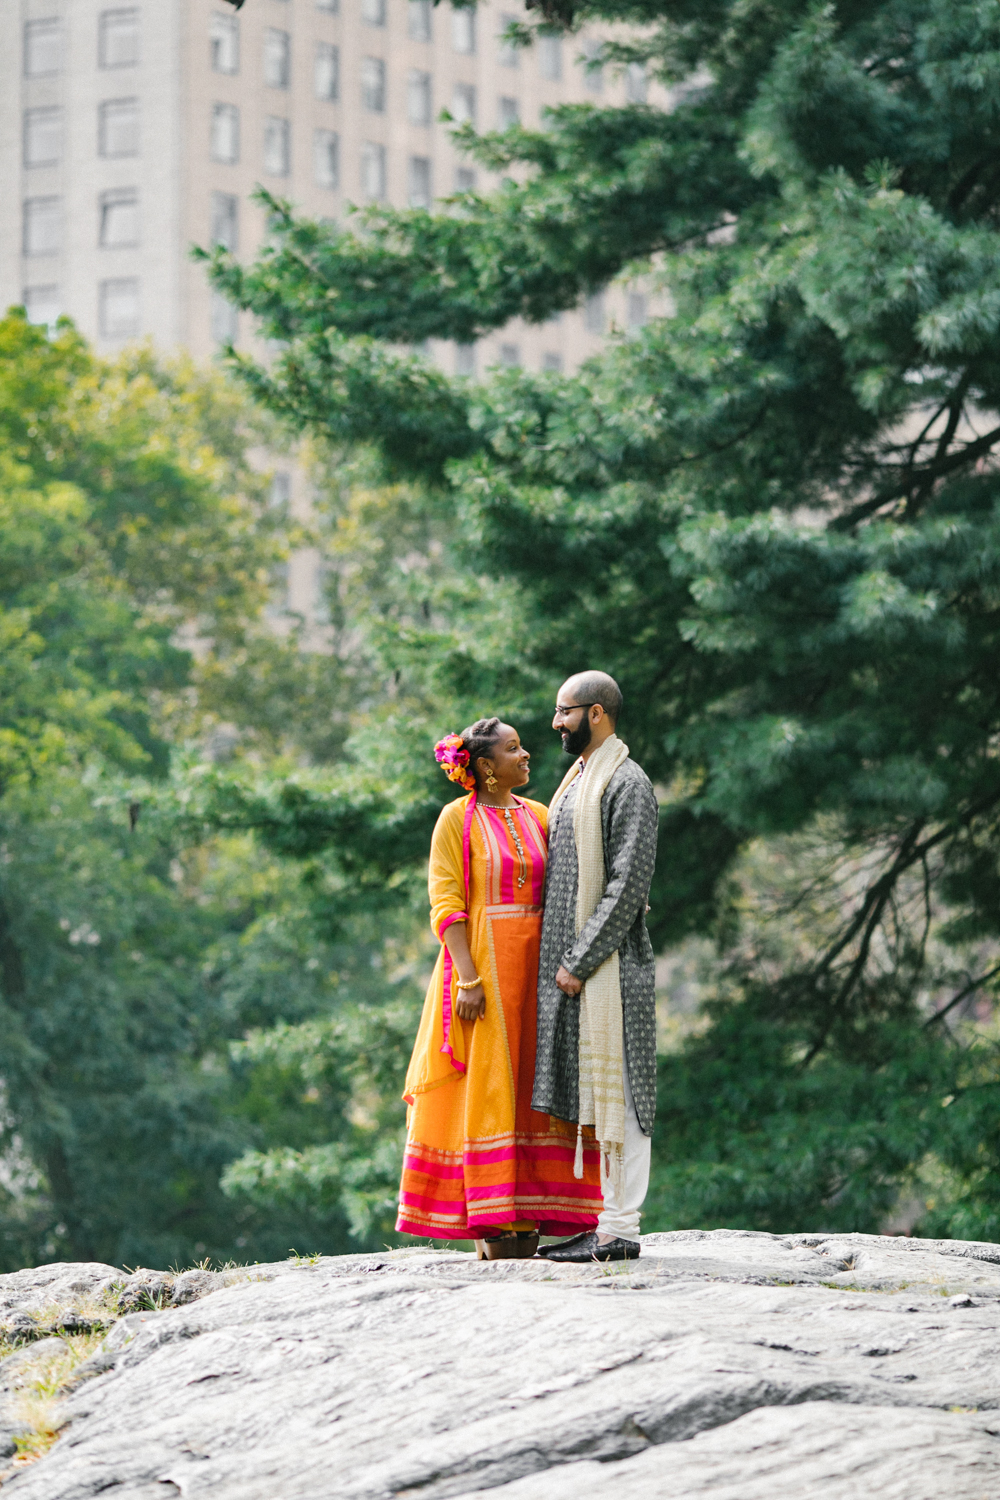 Portrait of the bride and groom together in Central Park.